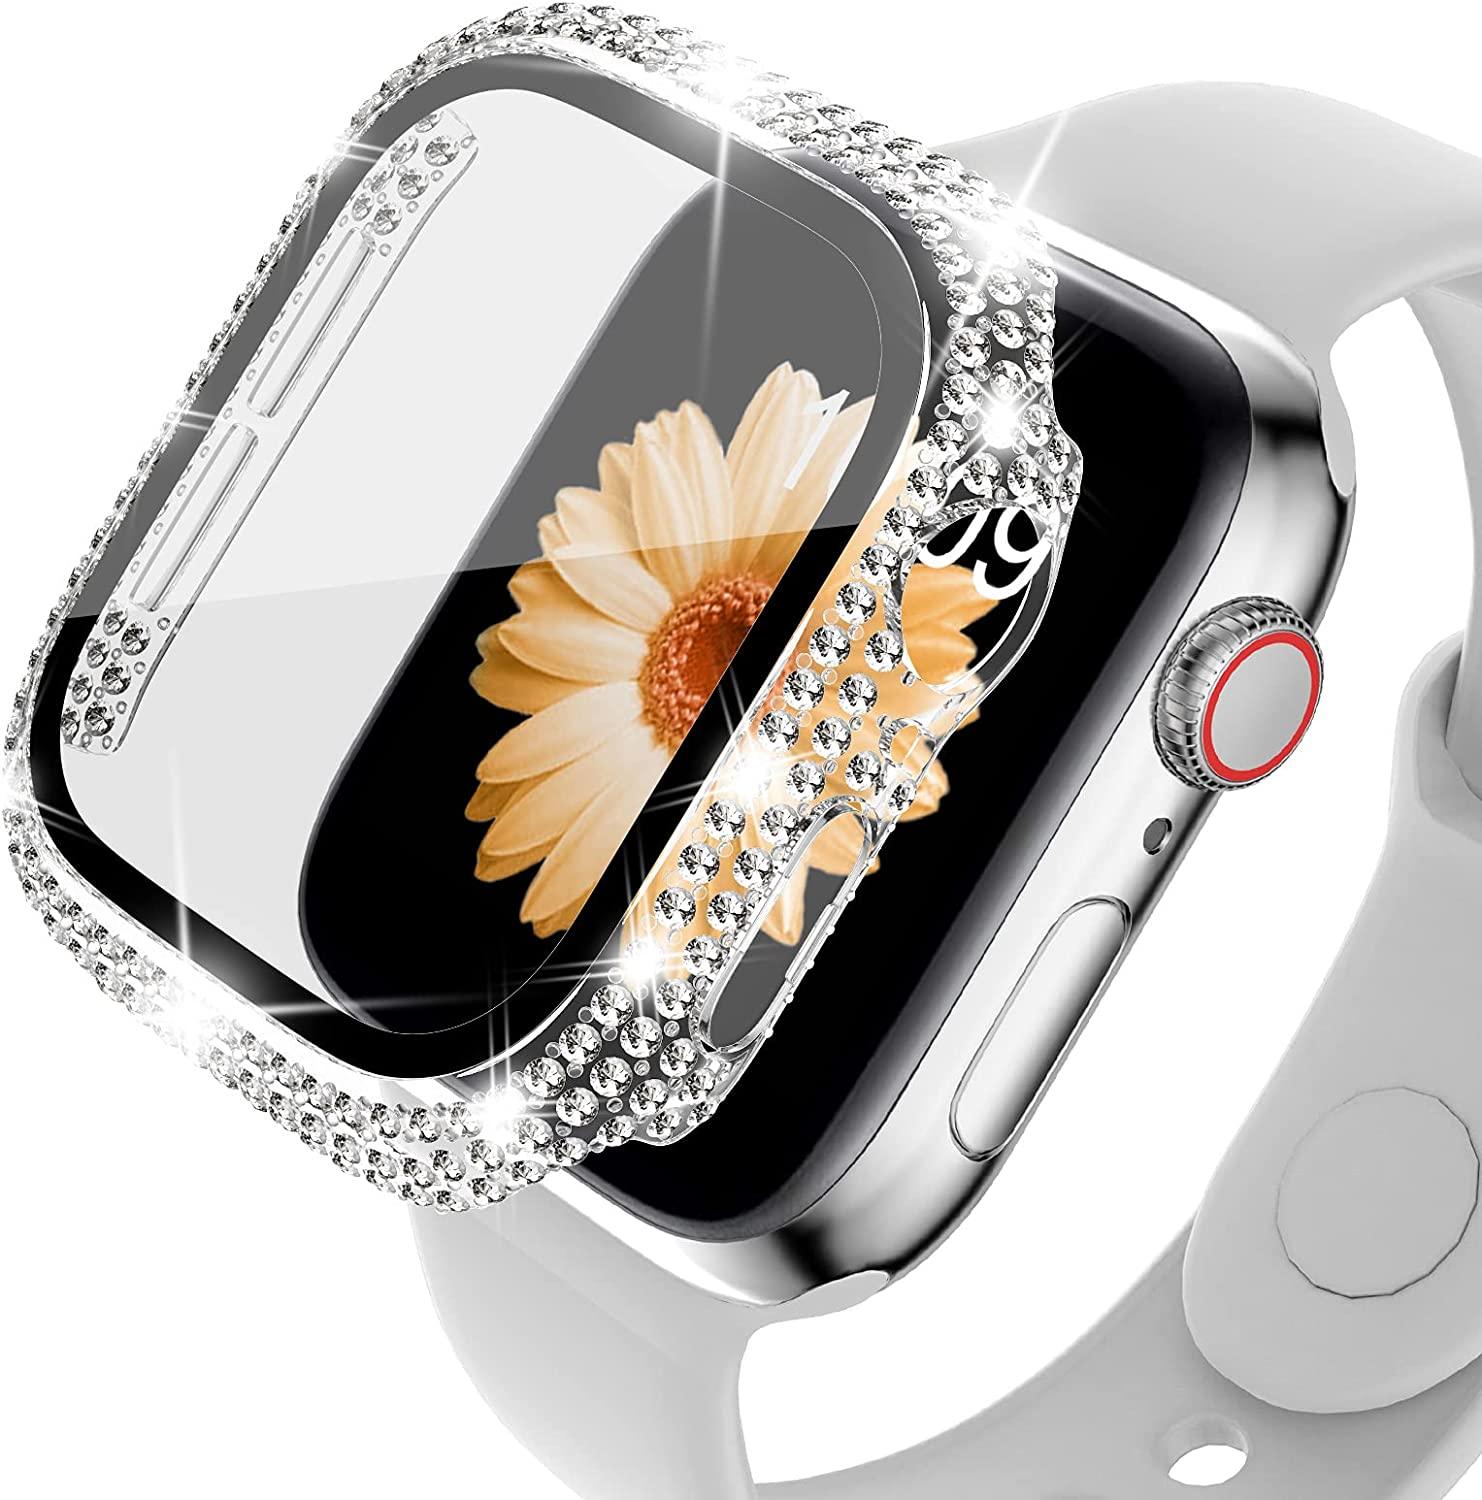 DABAOZA Compatible for Apple Watch Case 38mm with Screen Protector , Crystal Diamond Bling Women Girls Built-in HD Tempered Glass Protective Full Face Cover for iWatch Series 3 / 2 / 1 (Clear, 38mm)